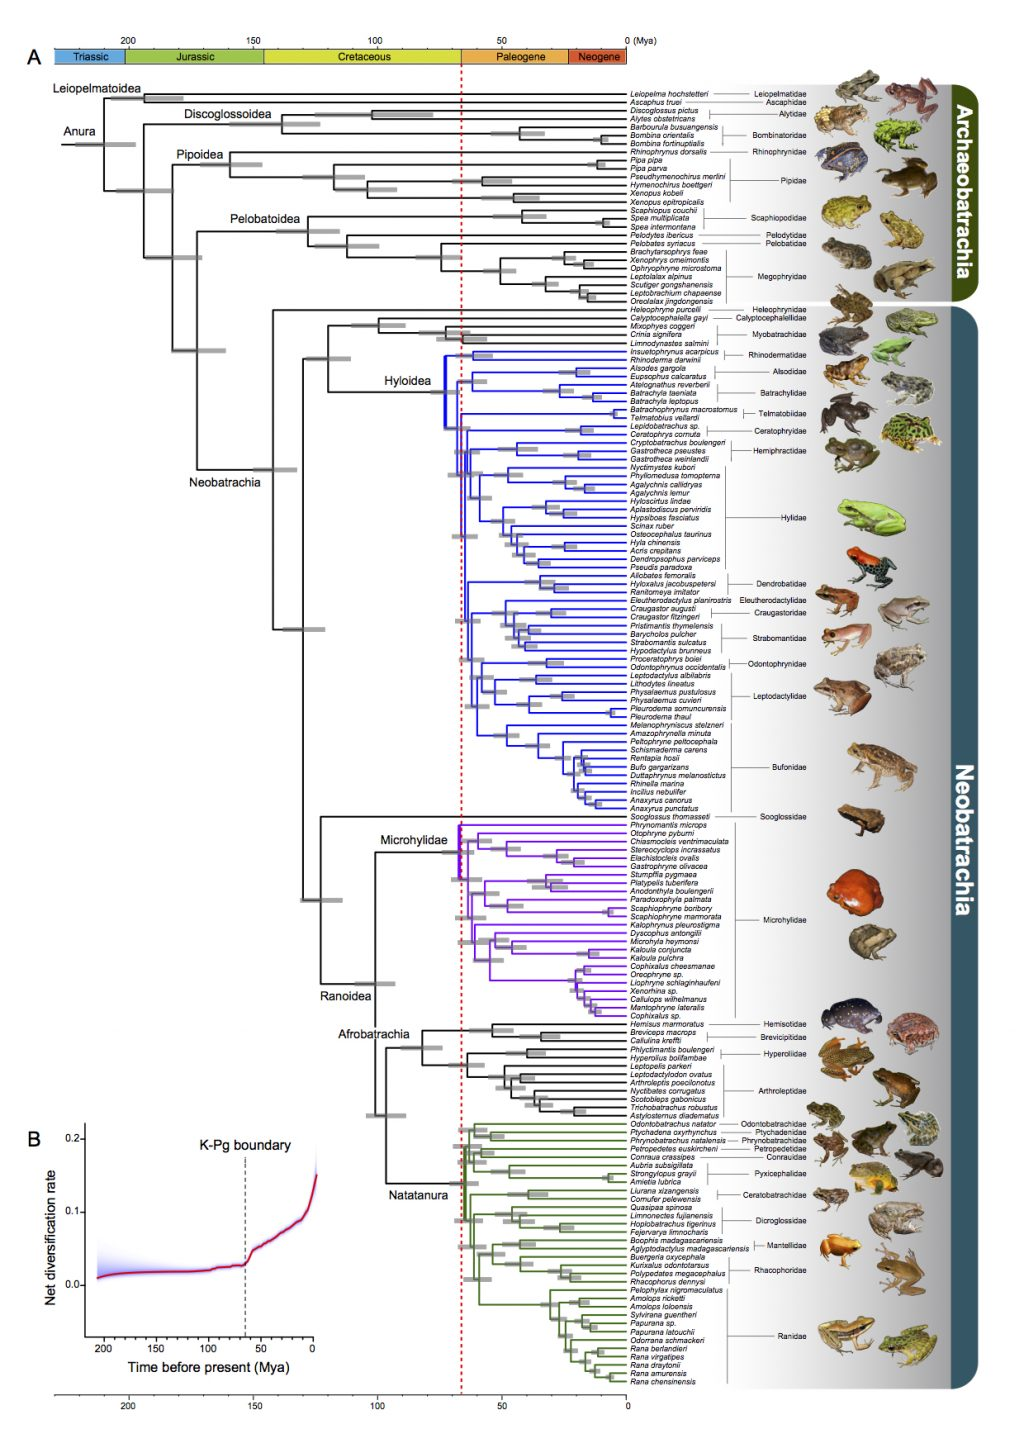 The analyses that generated this frog tree of life showed 88 percent of modern frogs evolved after the mass extinction that killed non-avian dinosaurs, marked here by a dotted red line. Graphic by Feng et al. in Proceedings of the National Academy of Sciences